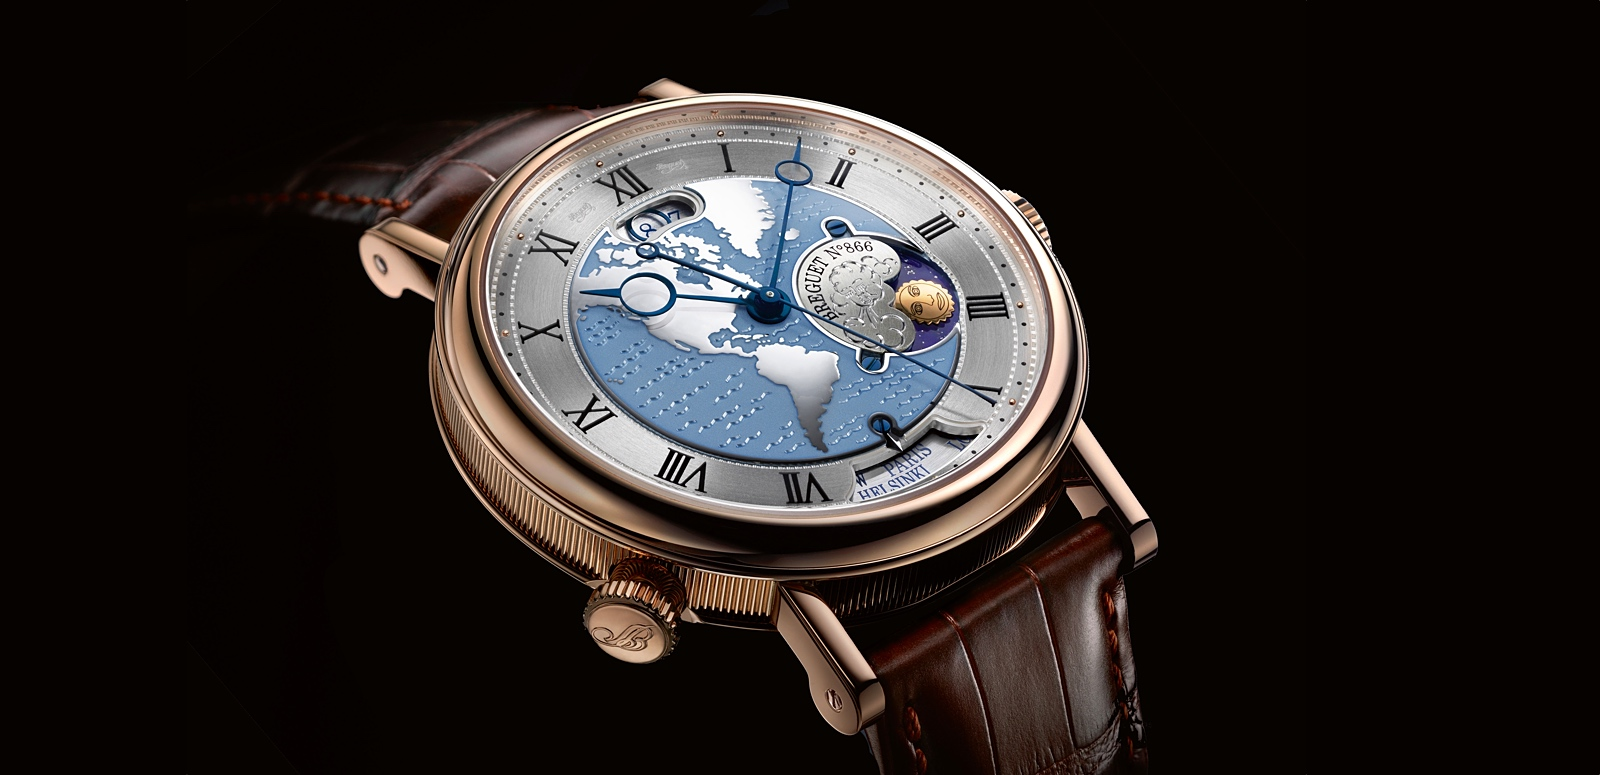 Breguet Hora Mundi 5717 – gmt watch